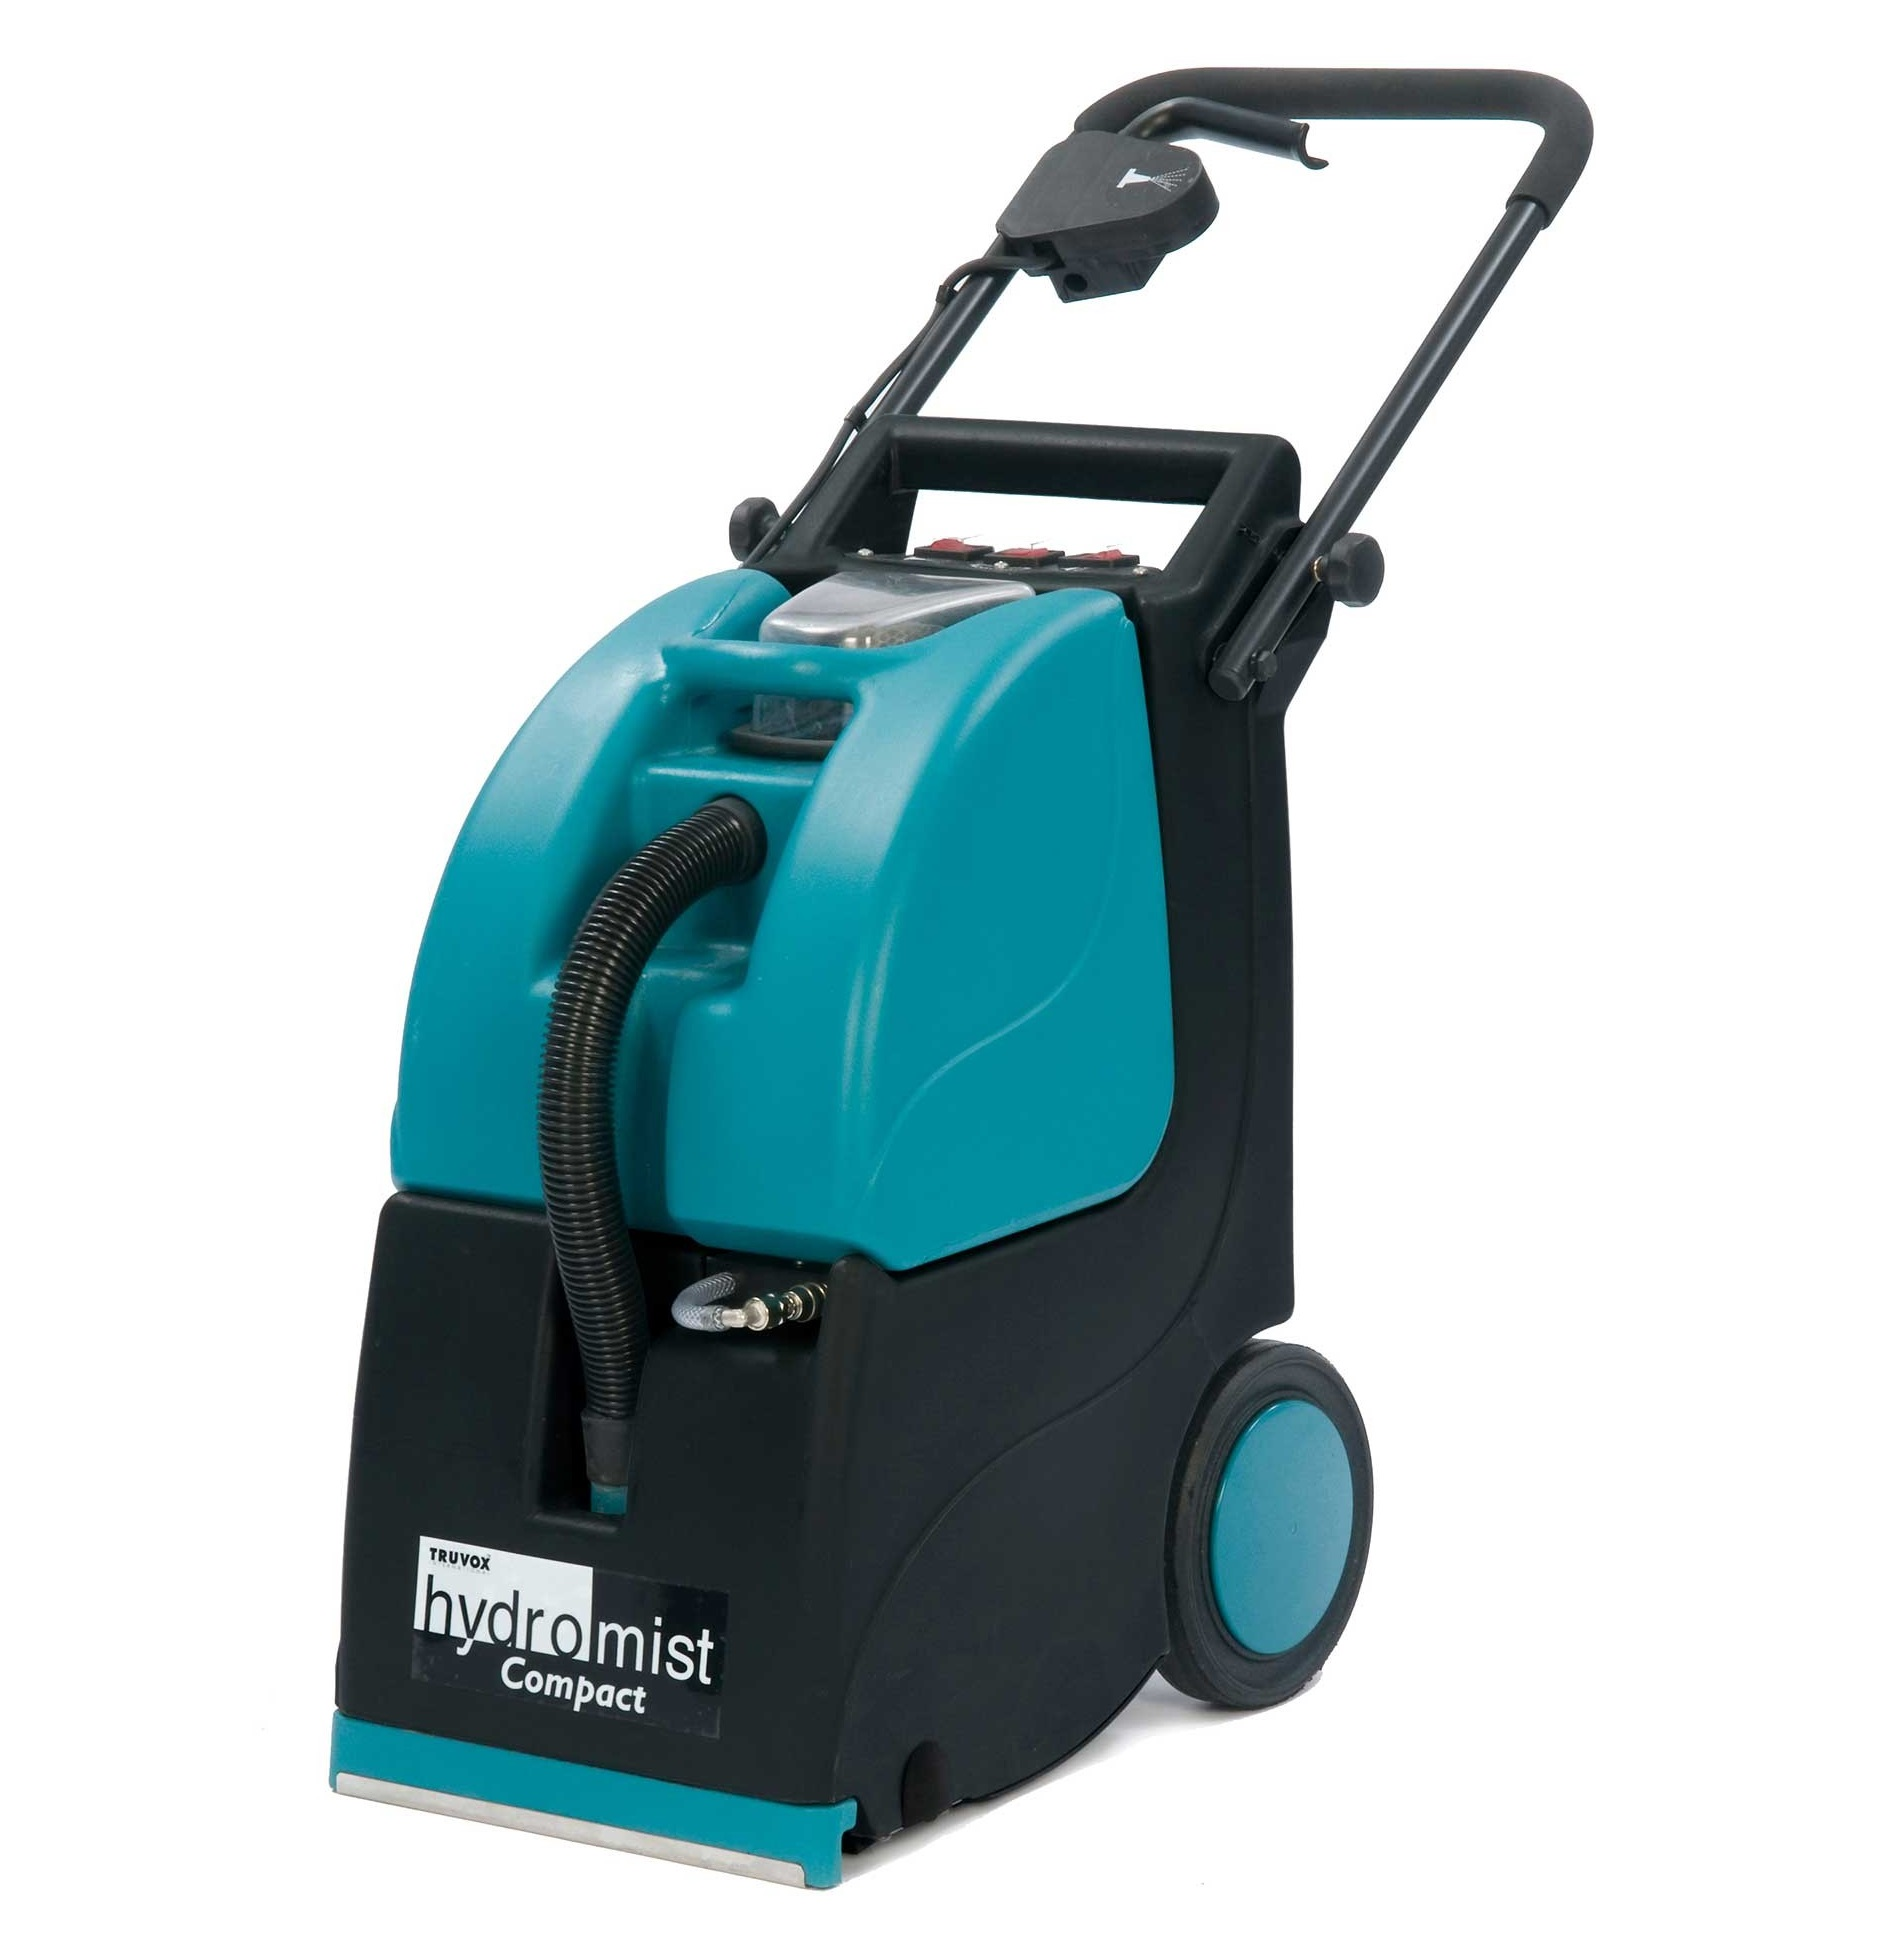 Truvox Hydromist HC250 - compact carpet extraction machine